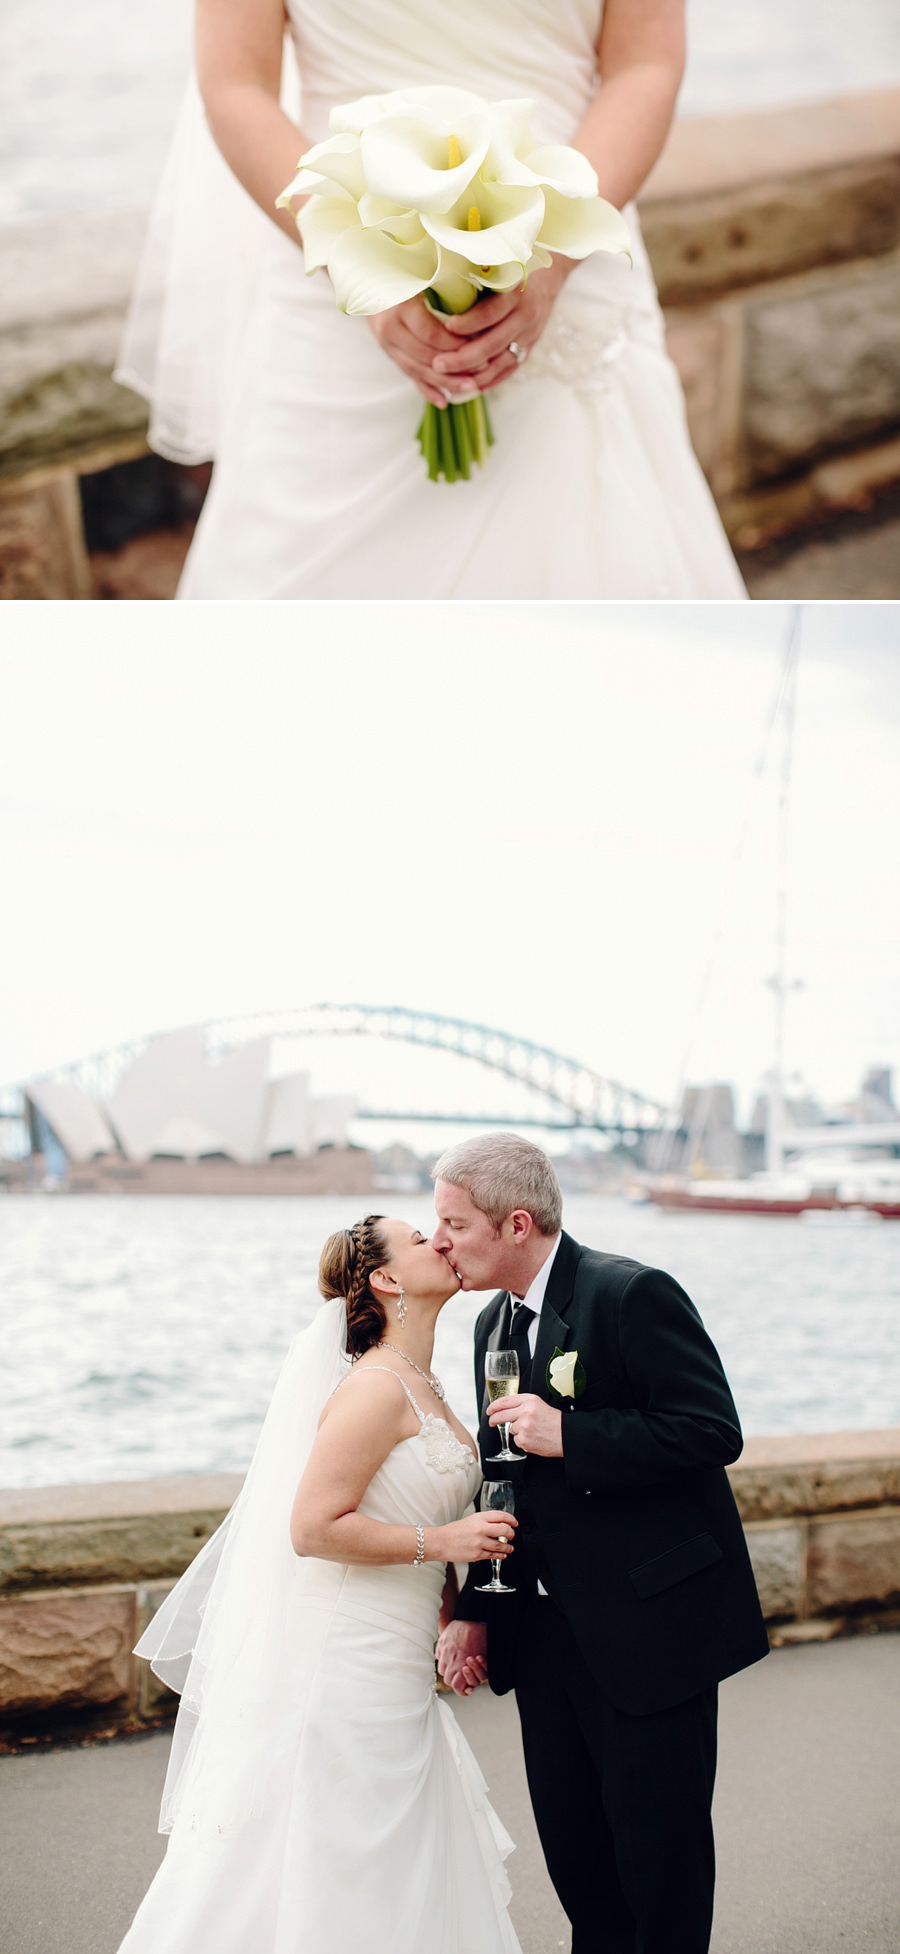 Timeless Wedding Photography: Sydney skyline